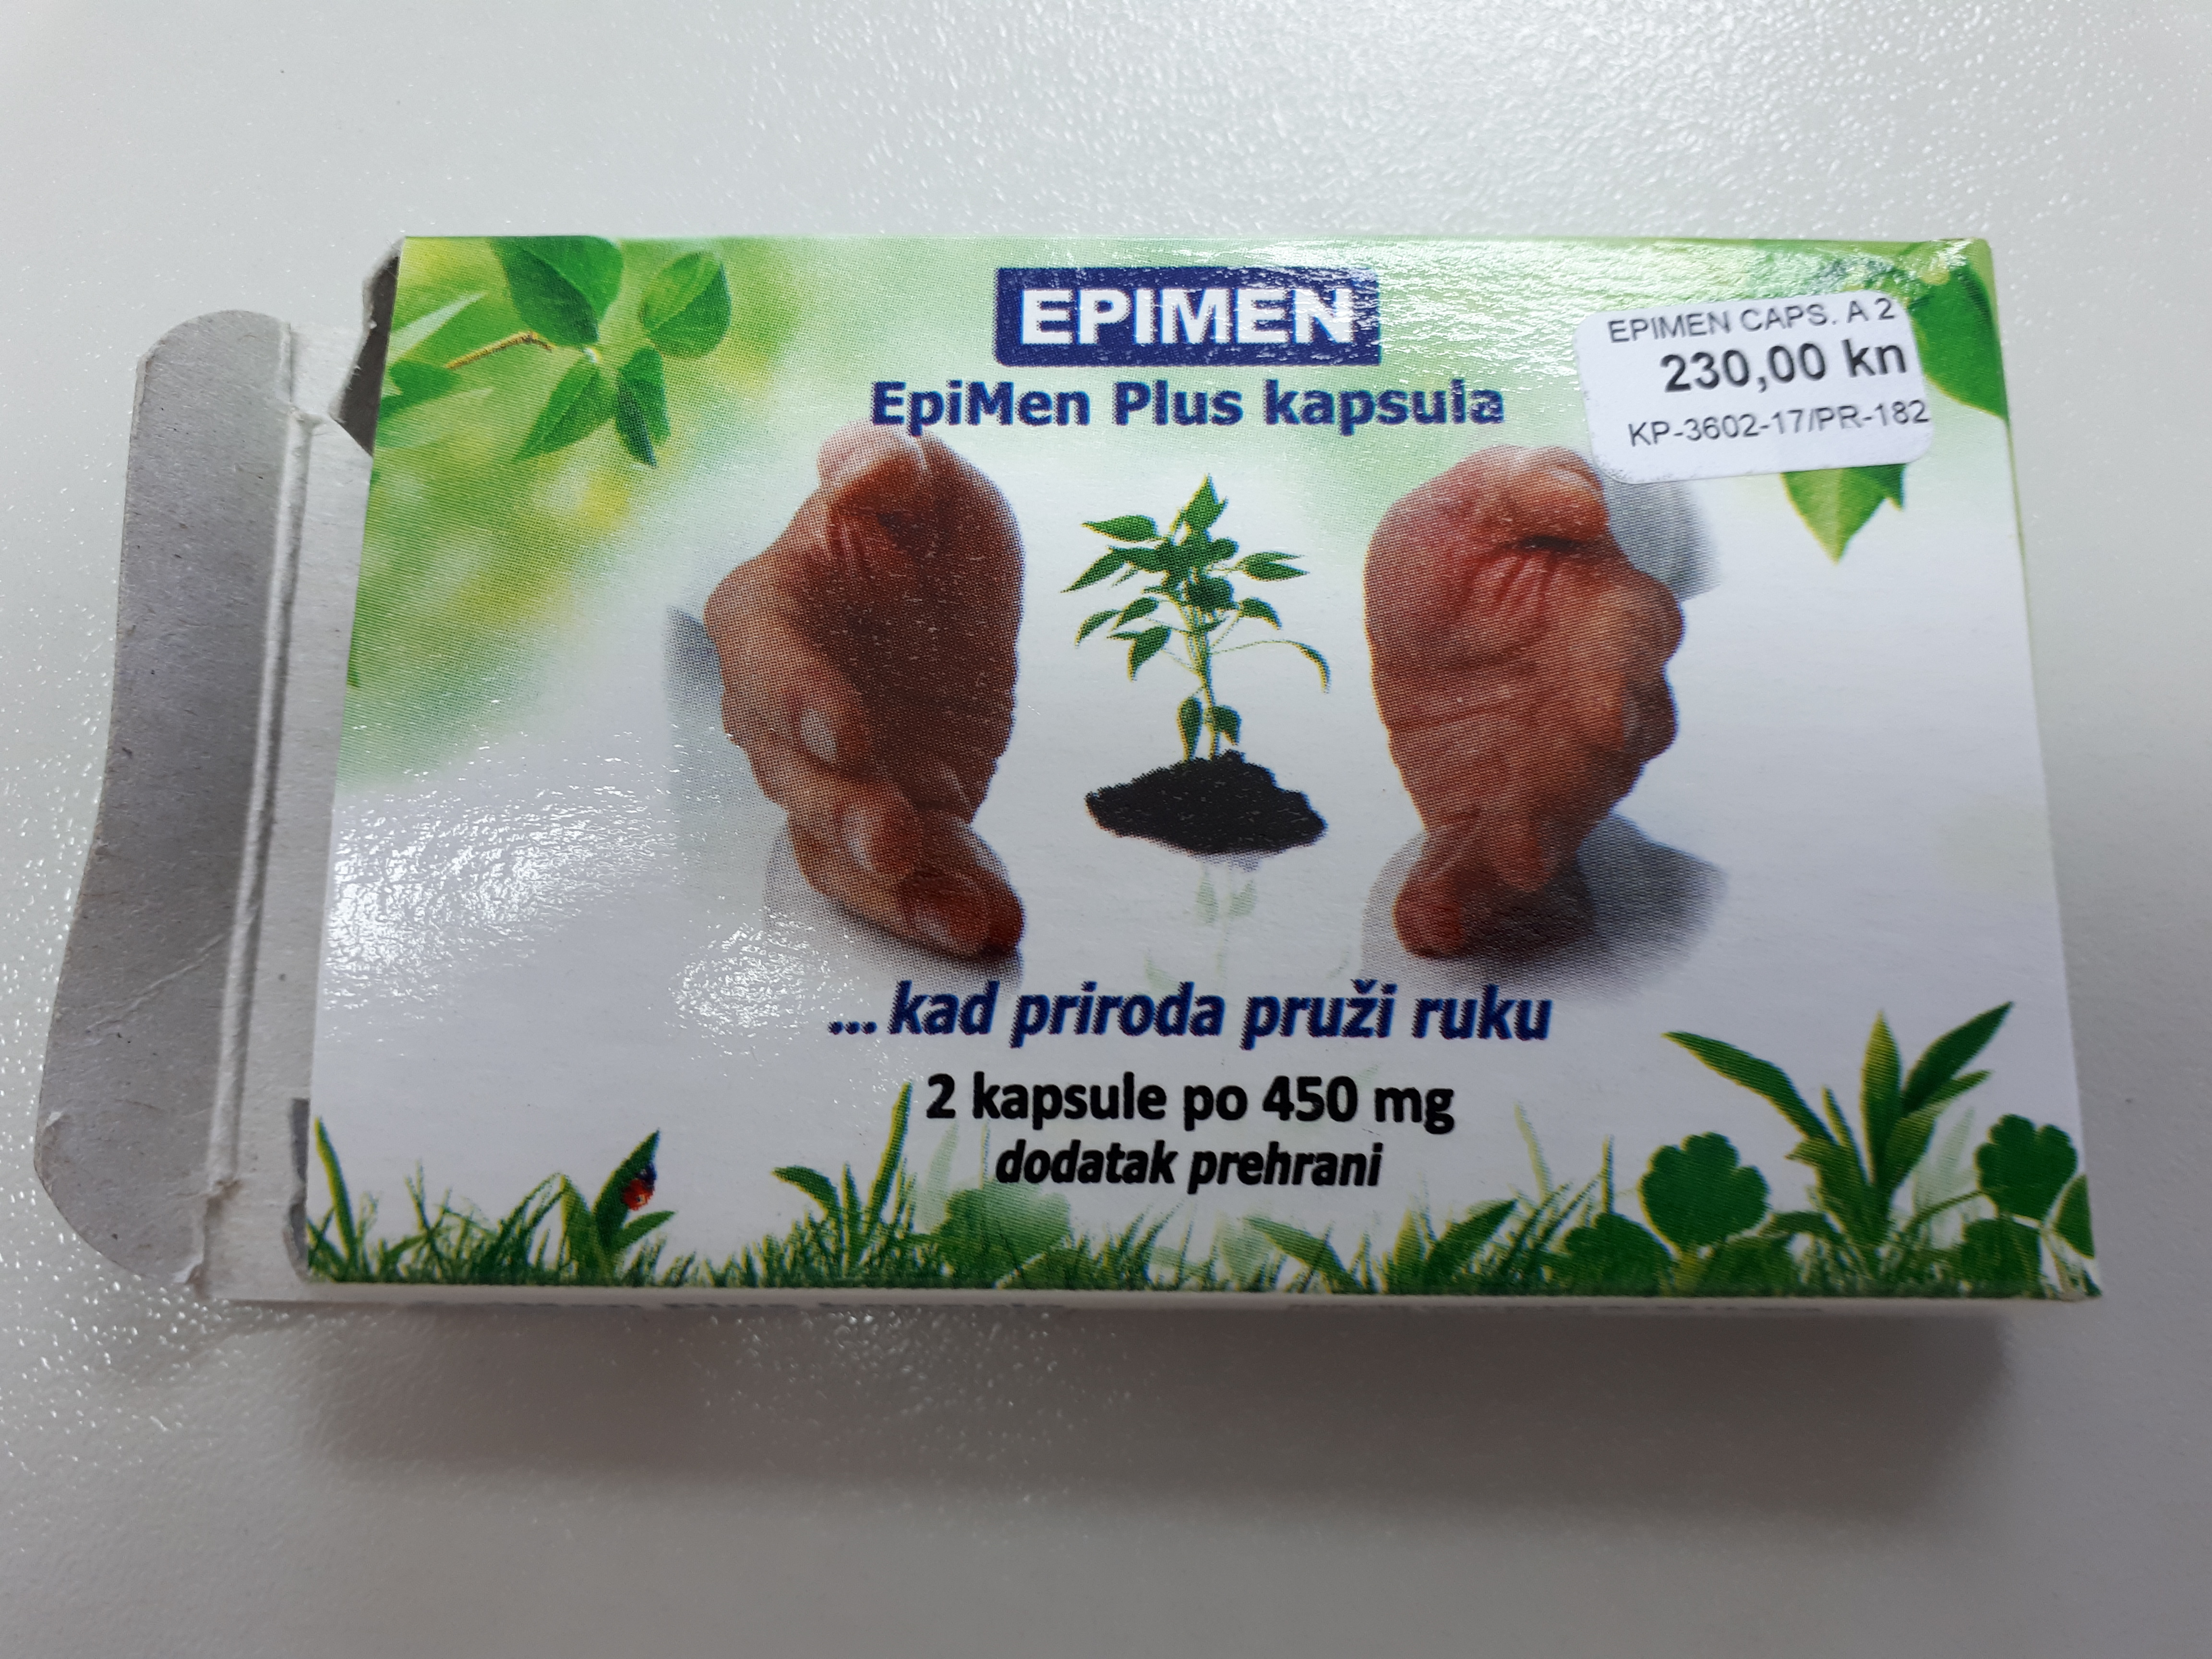 Image of the illigal product: Epimen Plus